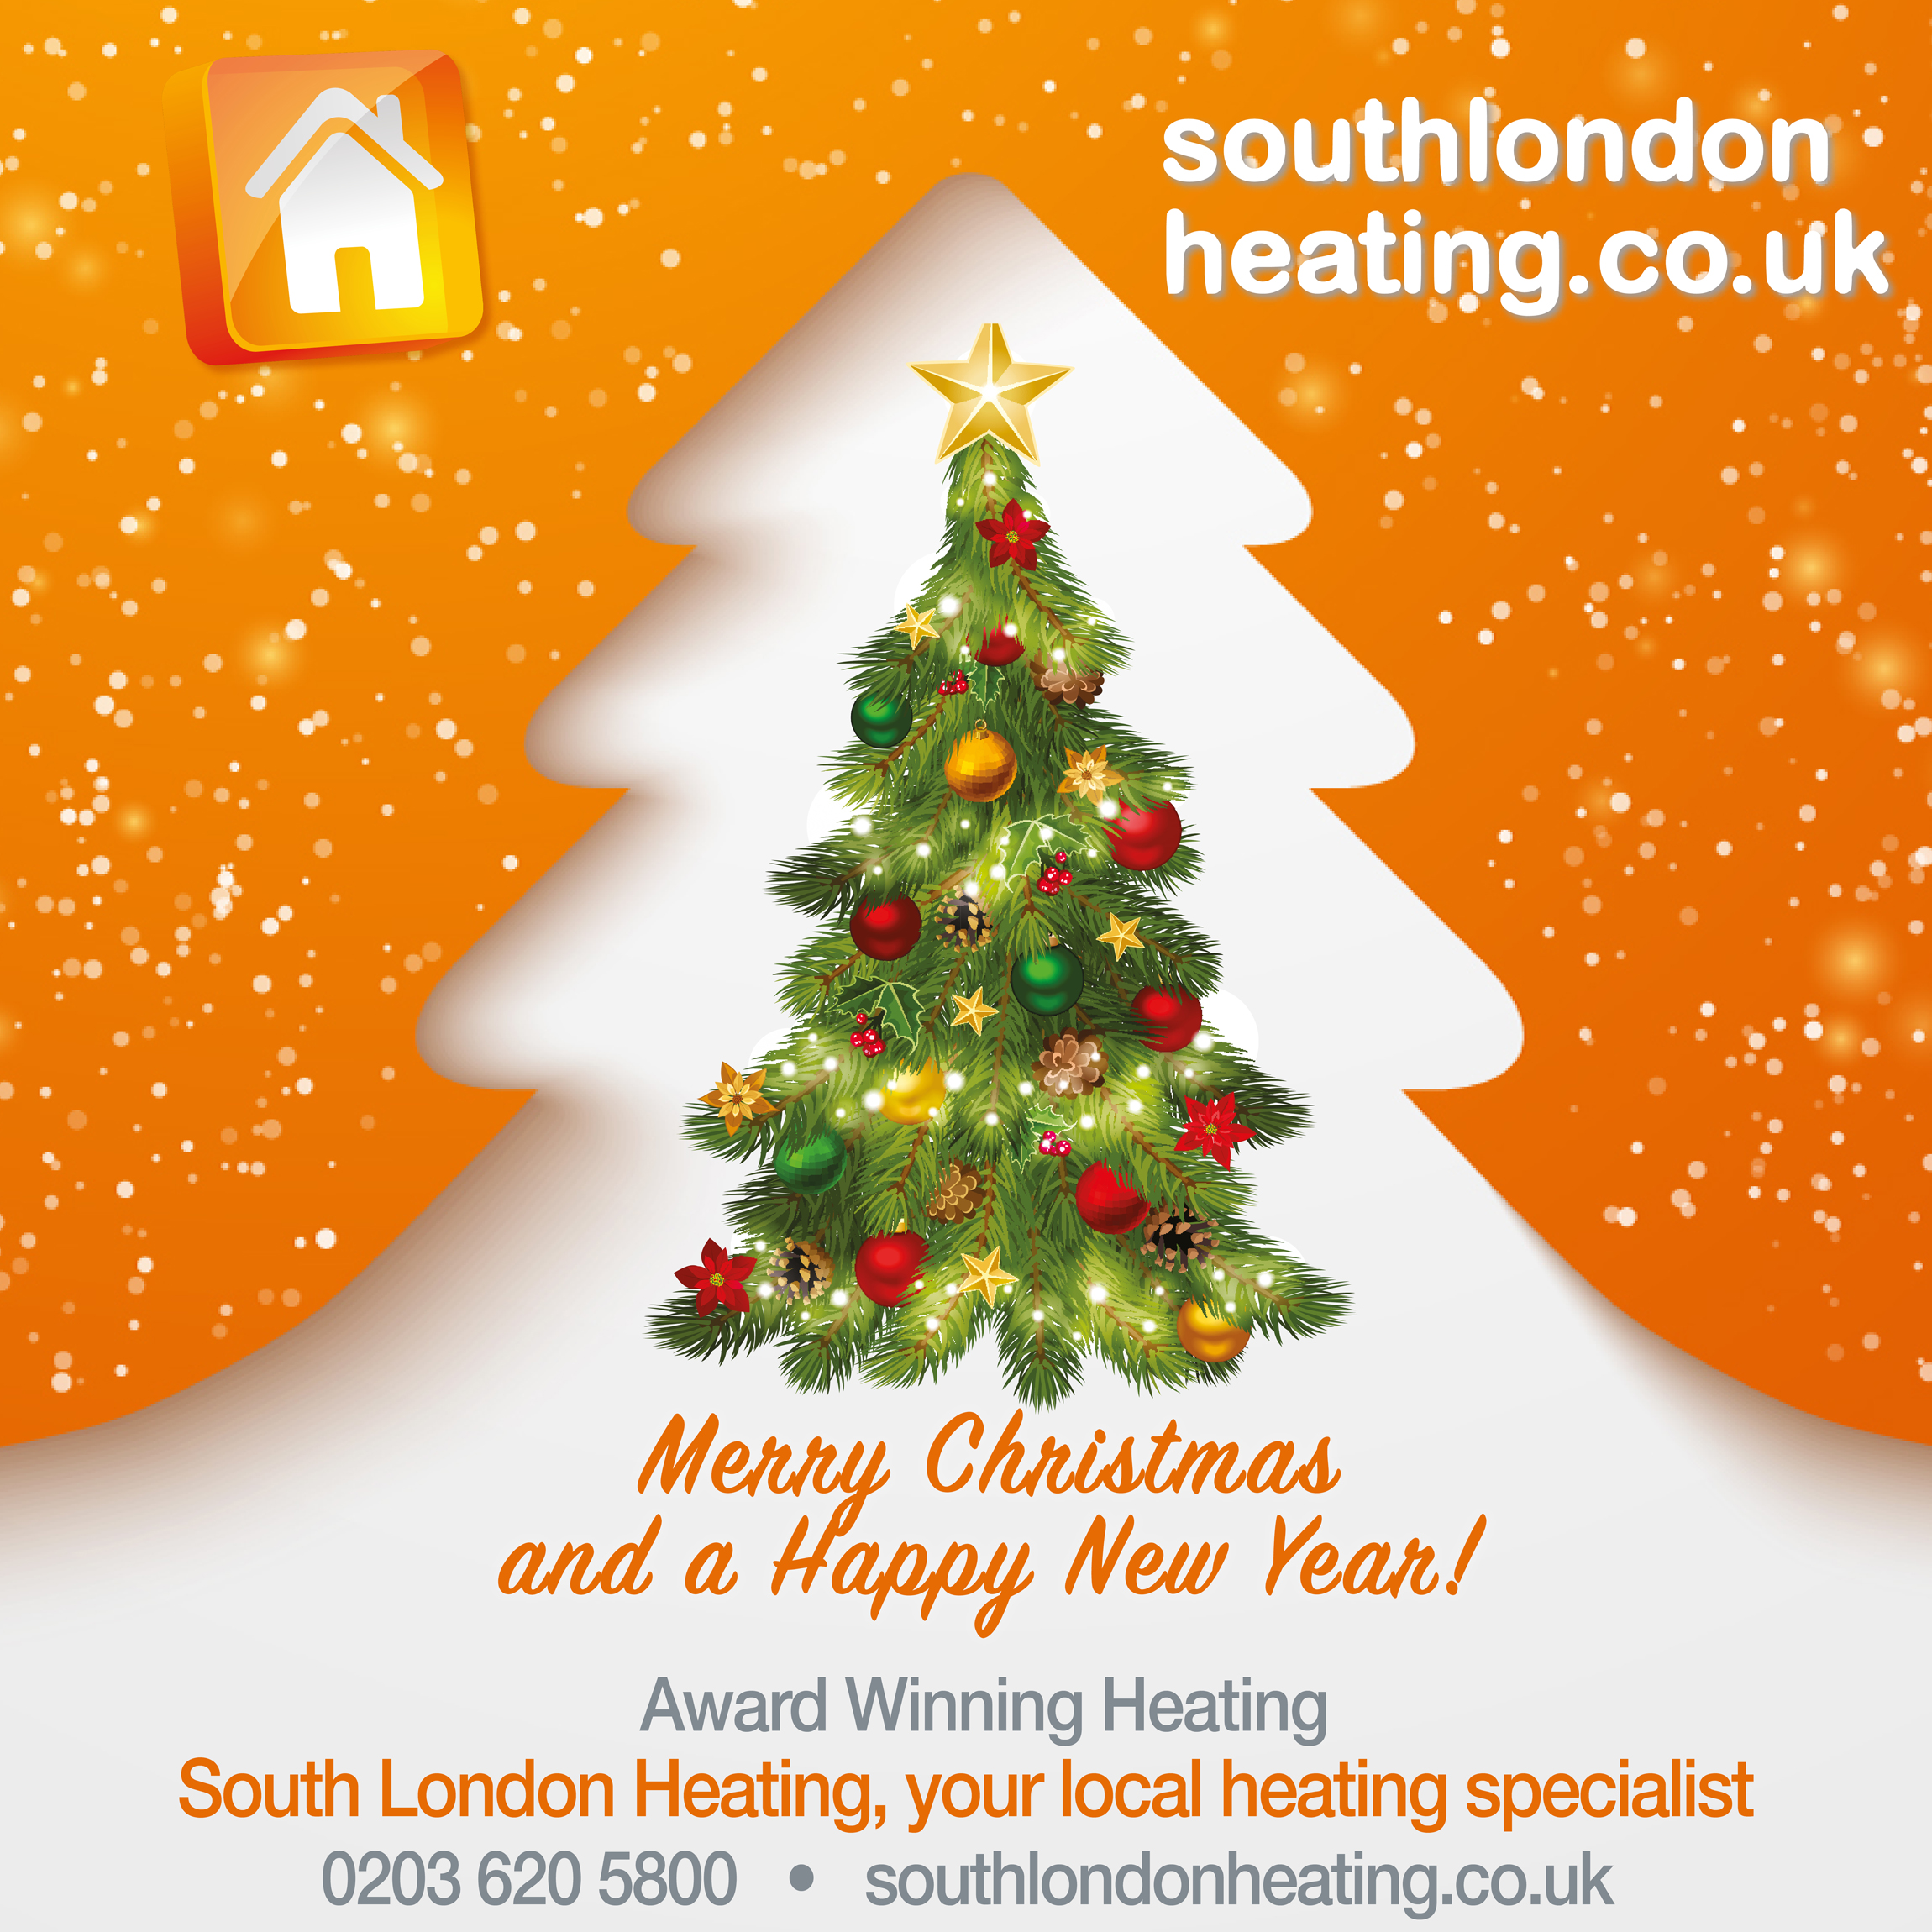 South London Heating Merry Christmas and a Happy New Year 2019